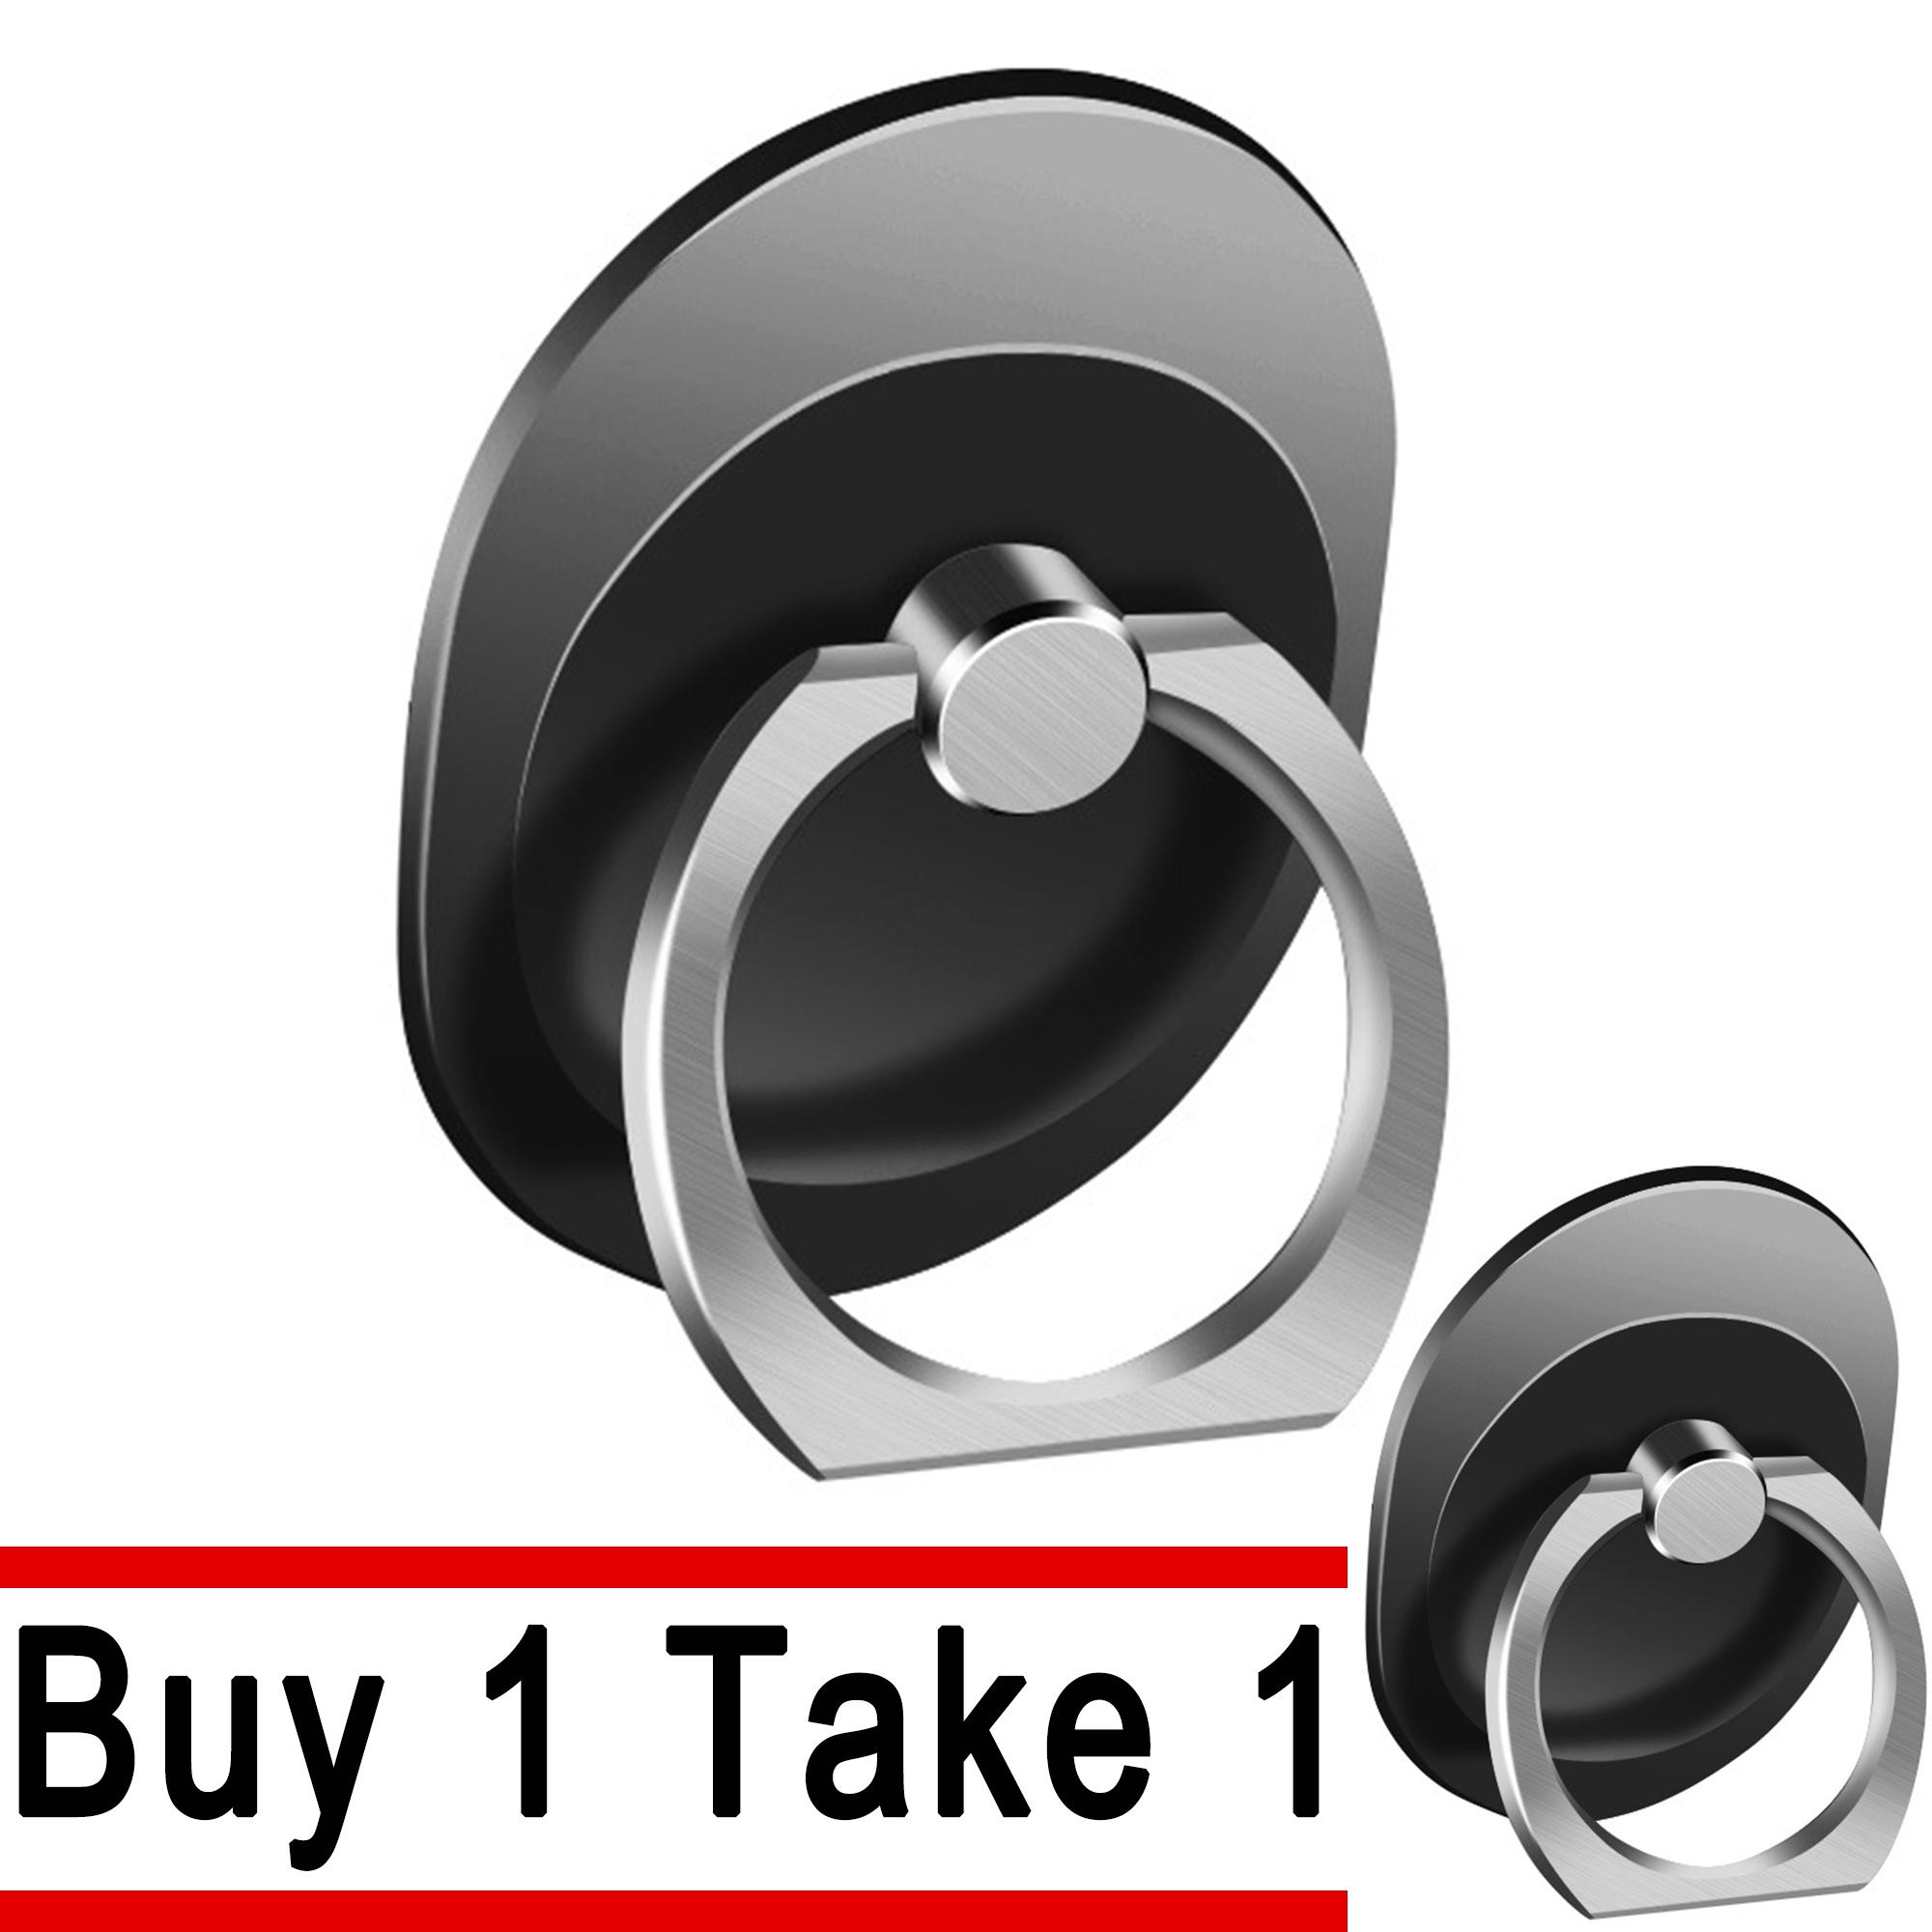 (buy 1 Take 1) 360 Degree Mobile Phone Ring Stand Holder By Lucky Charm.